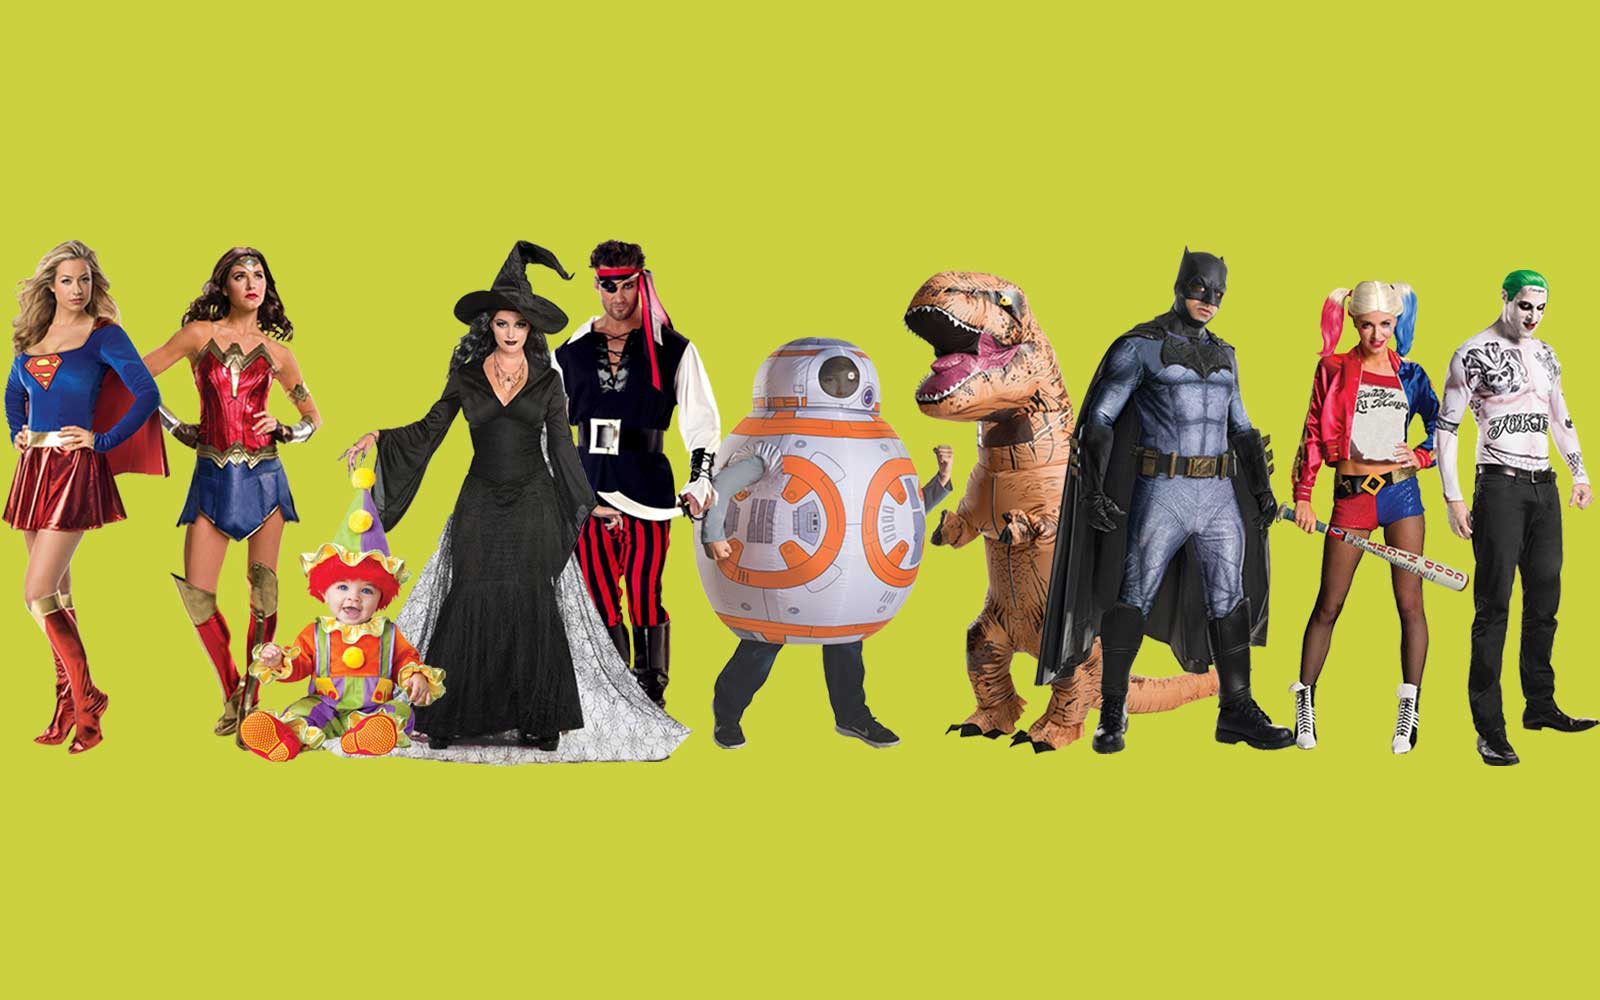 The 10 Most Popular Halloween Costume Searches on Google